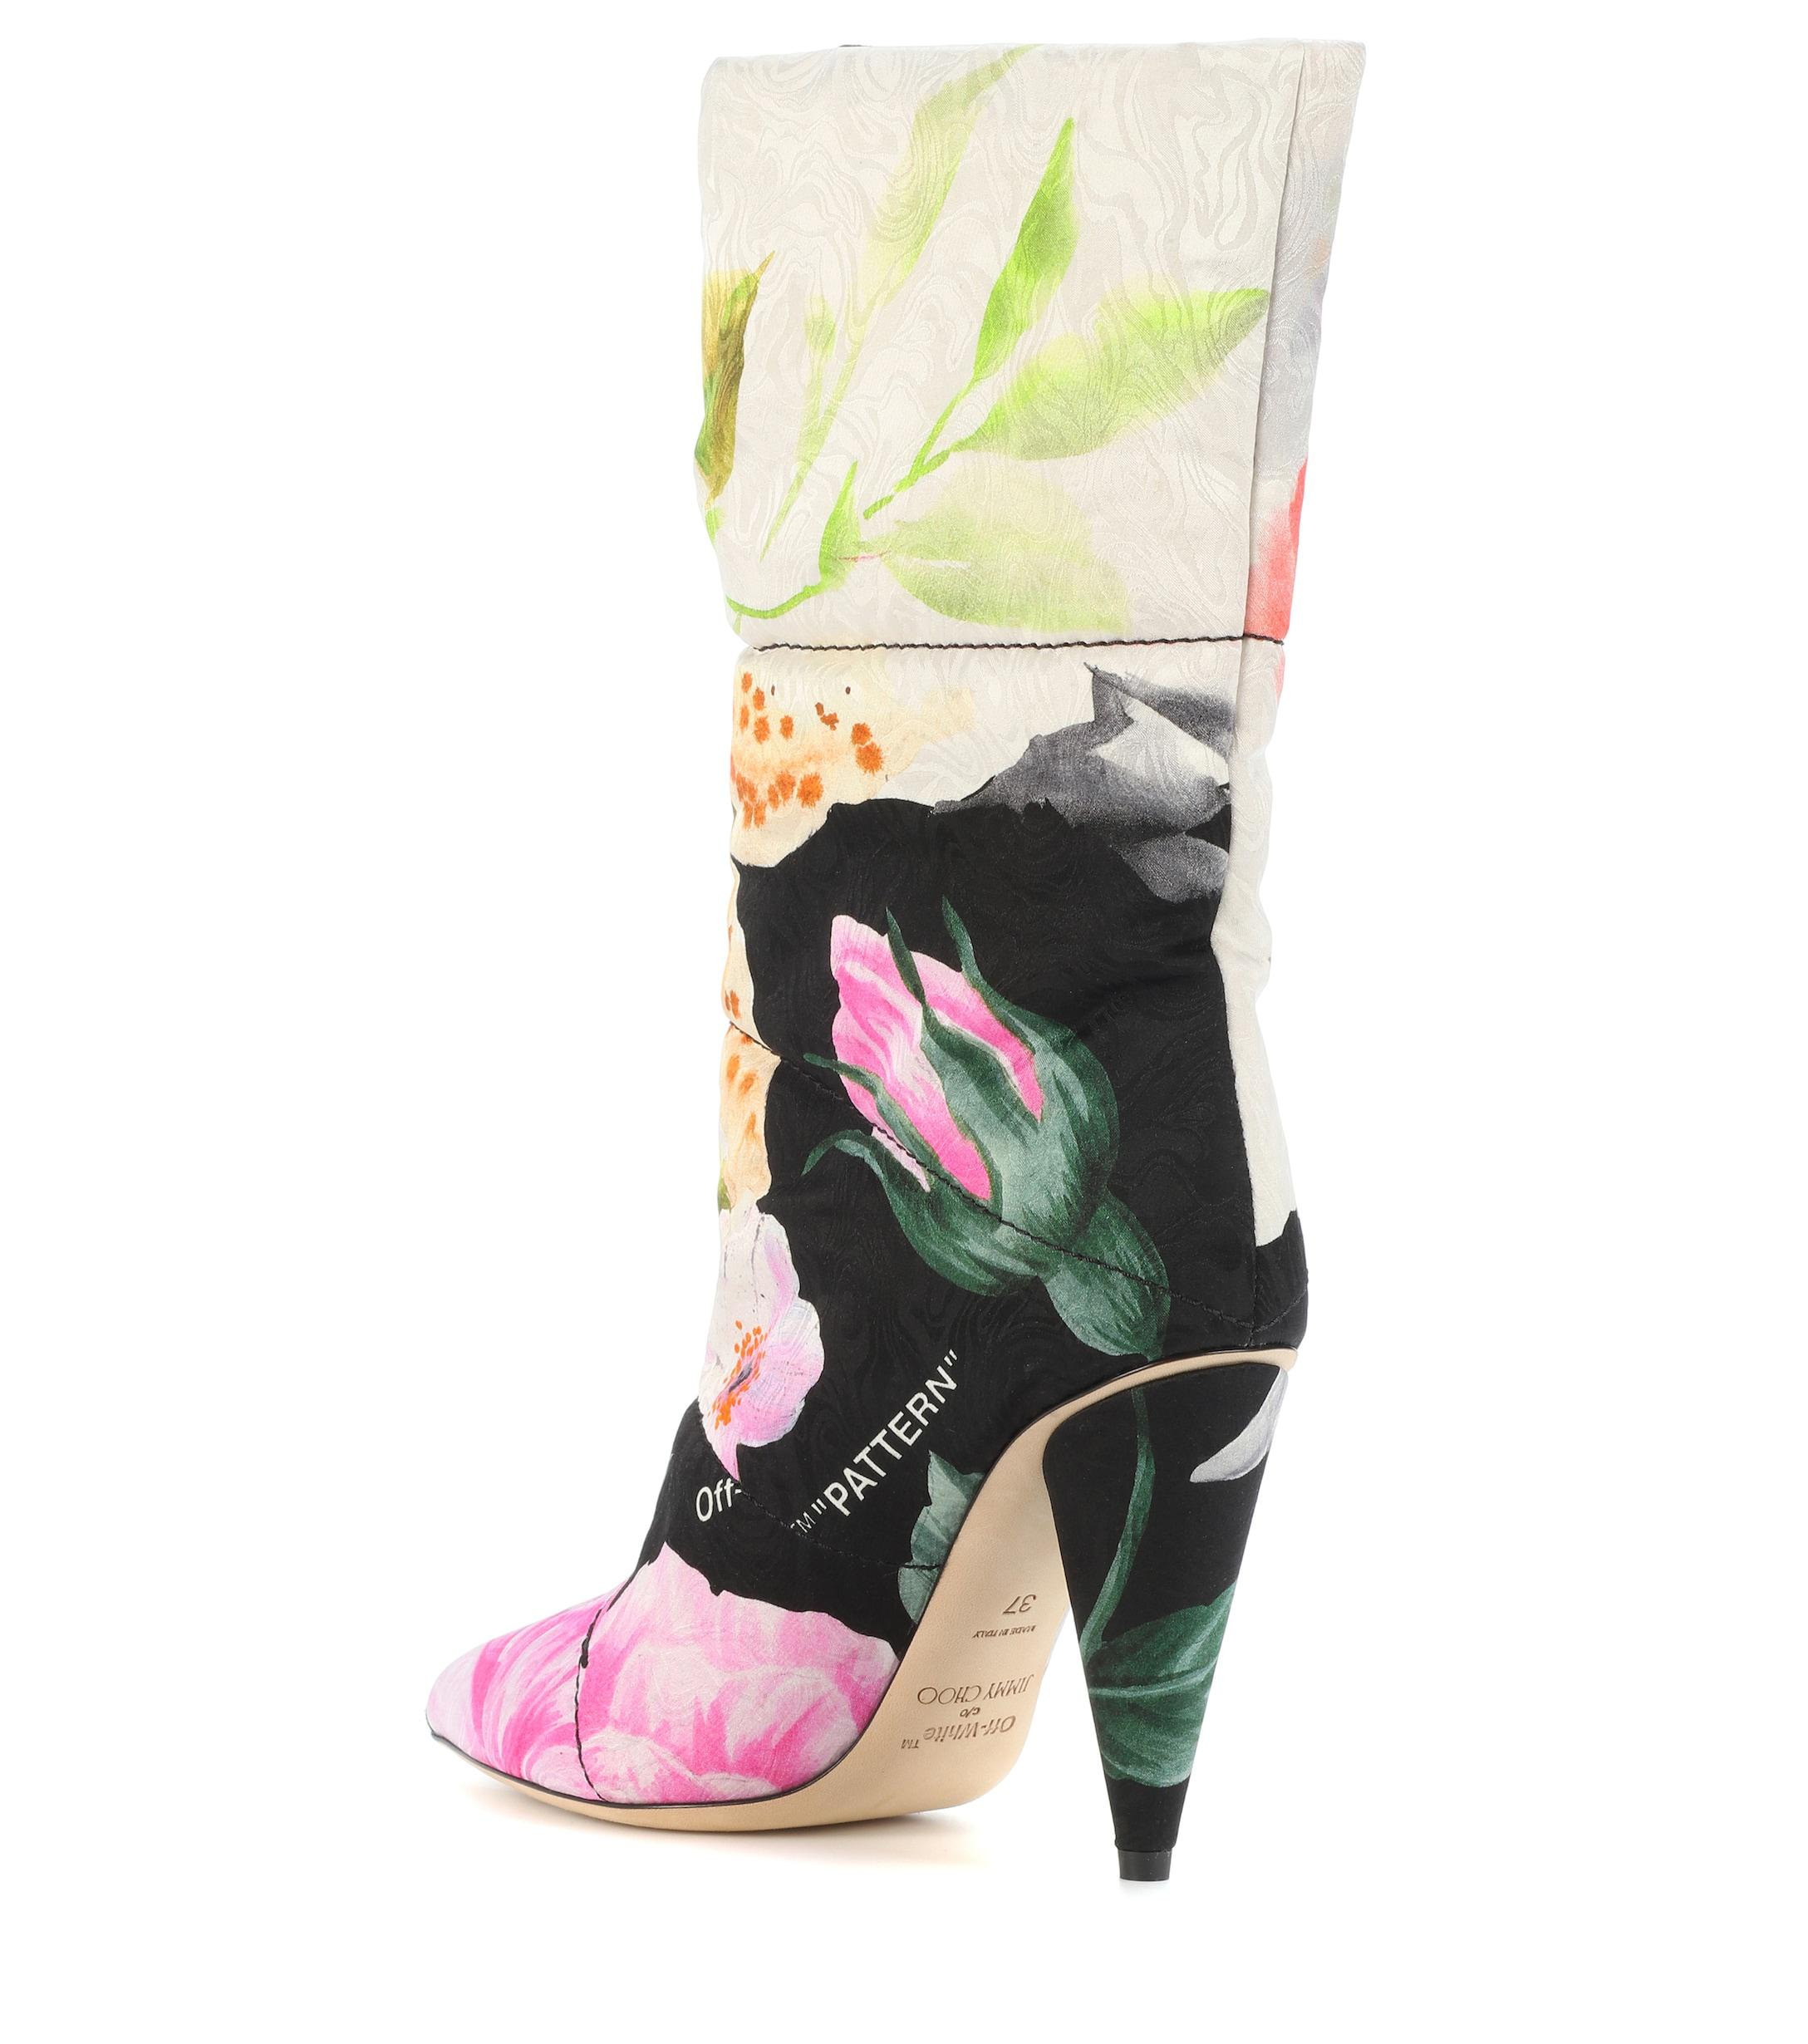 b5e256029f3d Lyst - Jimmy Choo X Off-white Sara 100 Floral Jacquard Boots in White